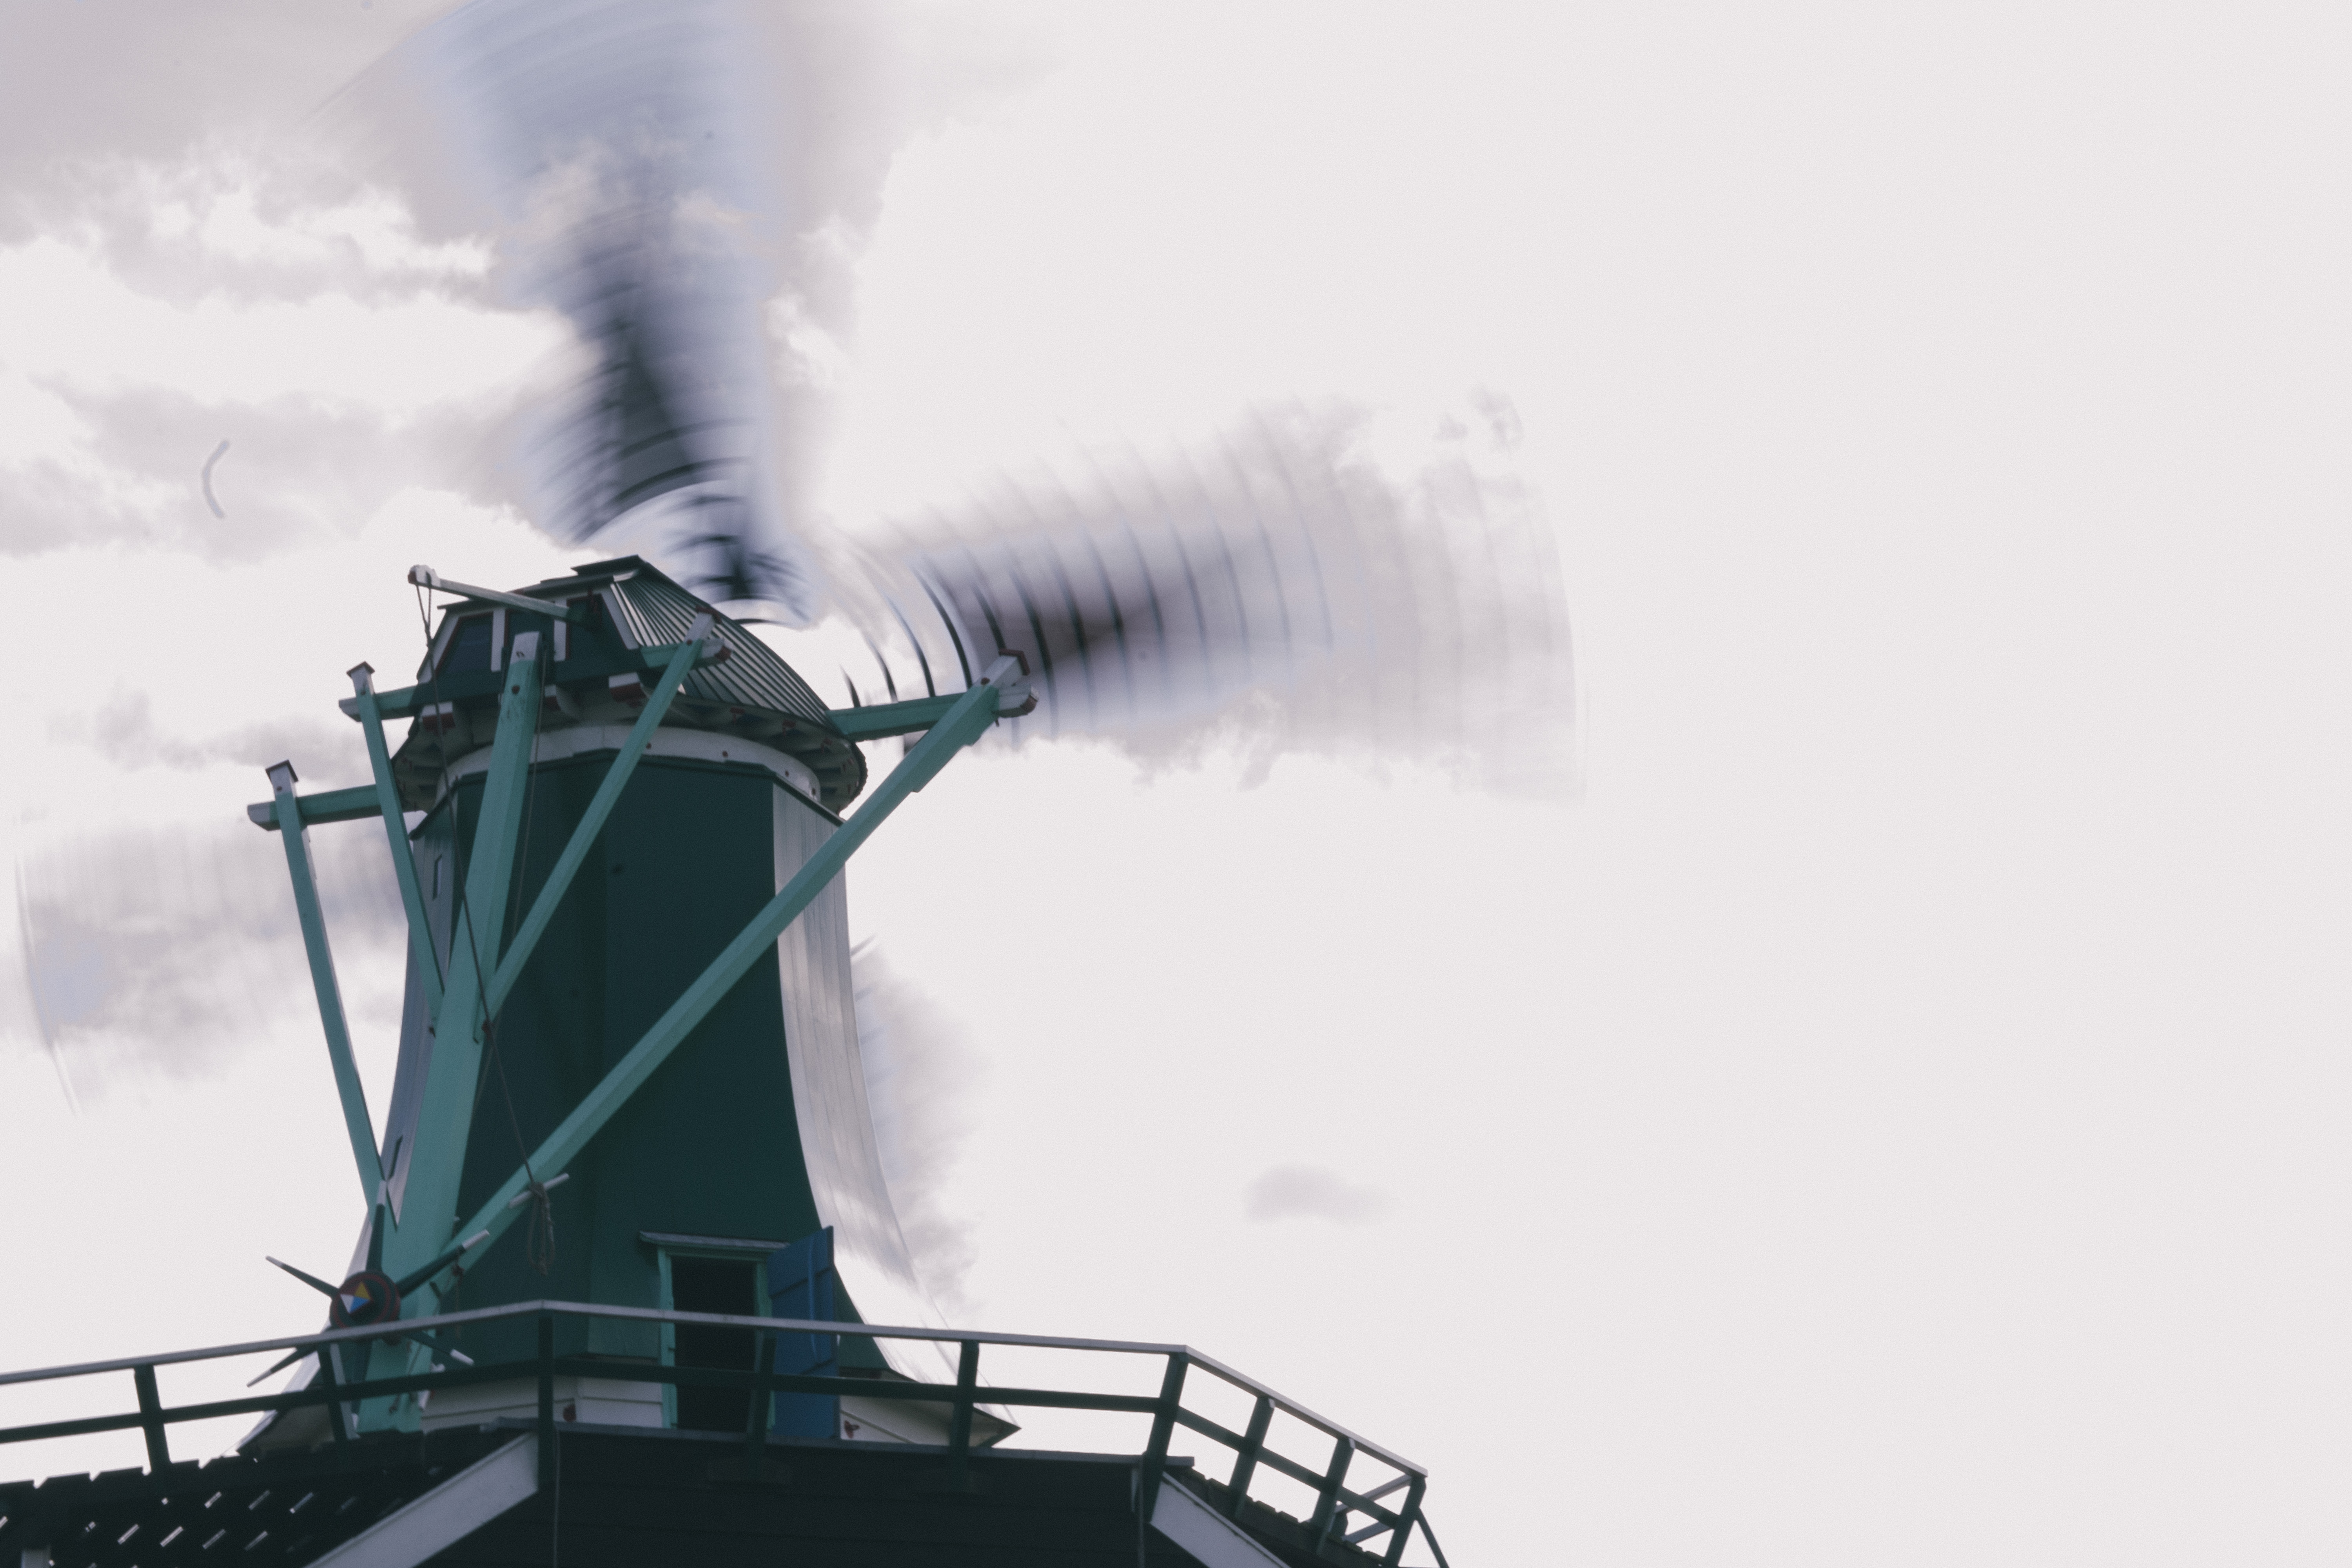 low angle photography of a windmill